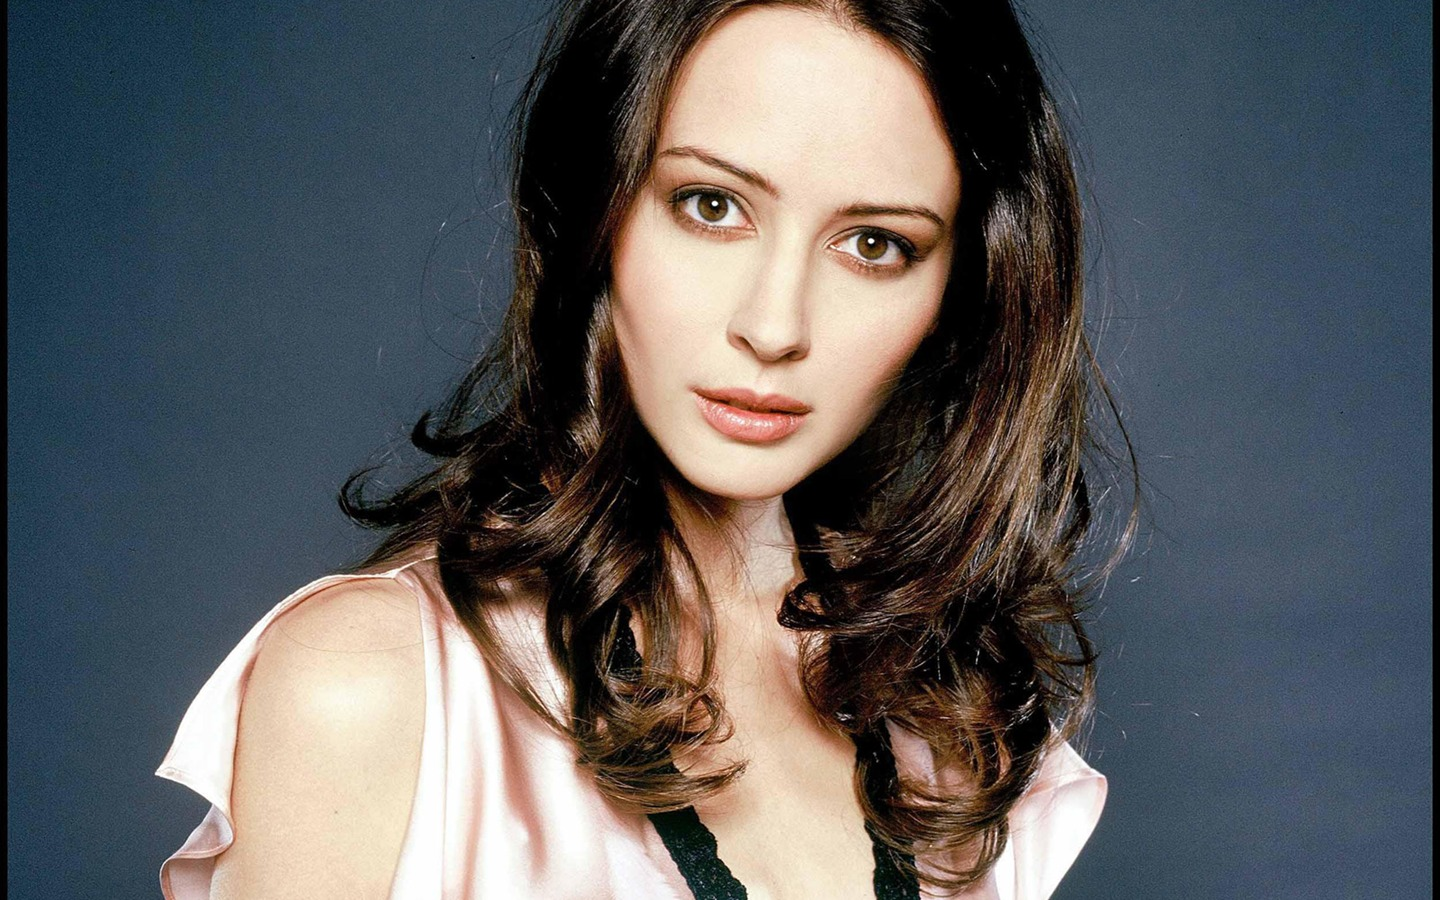 Amy Acker #017 - 1440x900 Wallpapers Pictures Photos Images